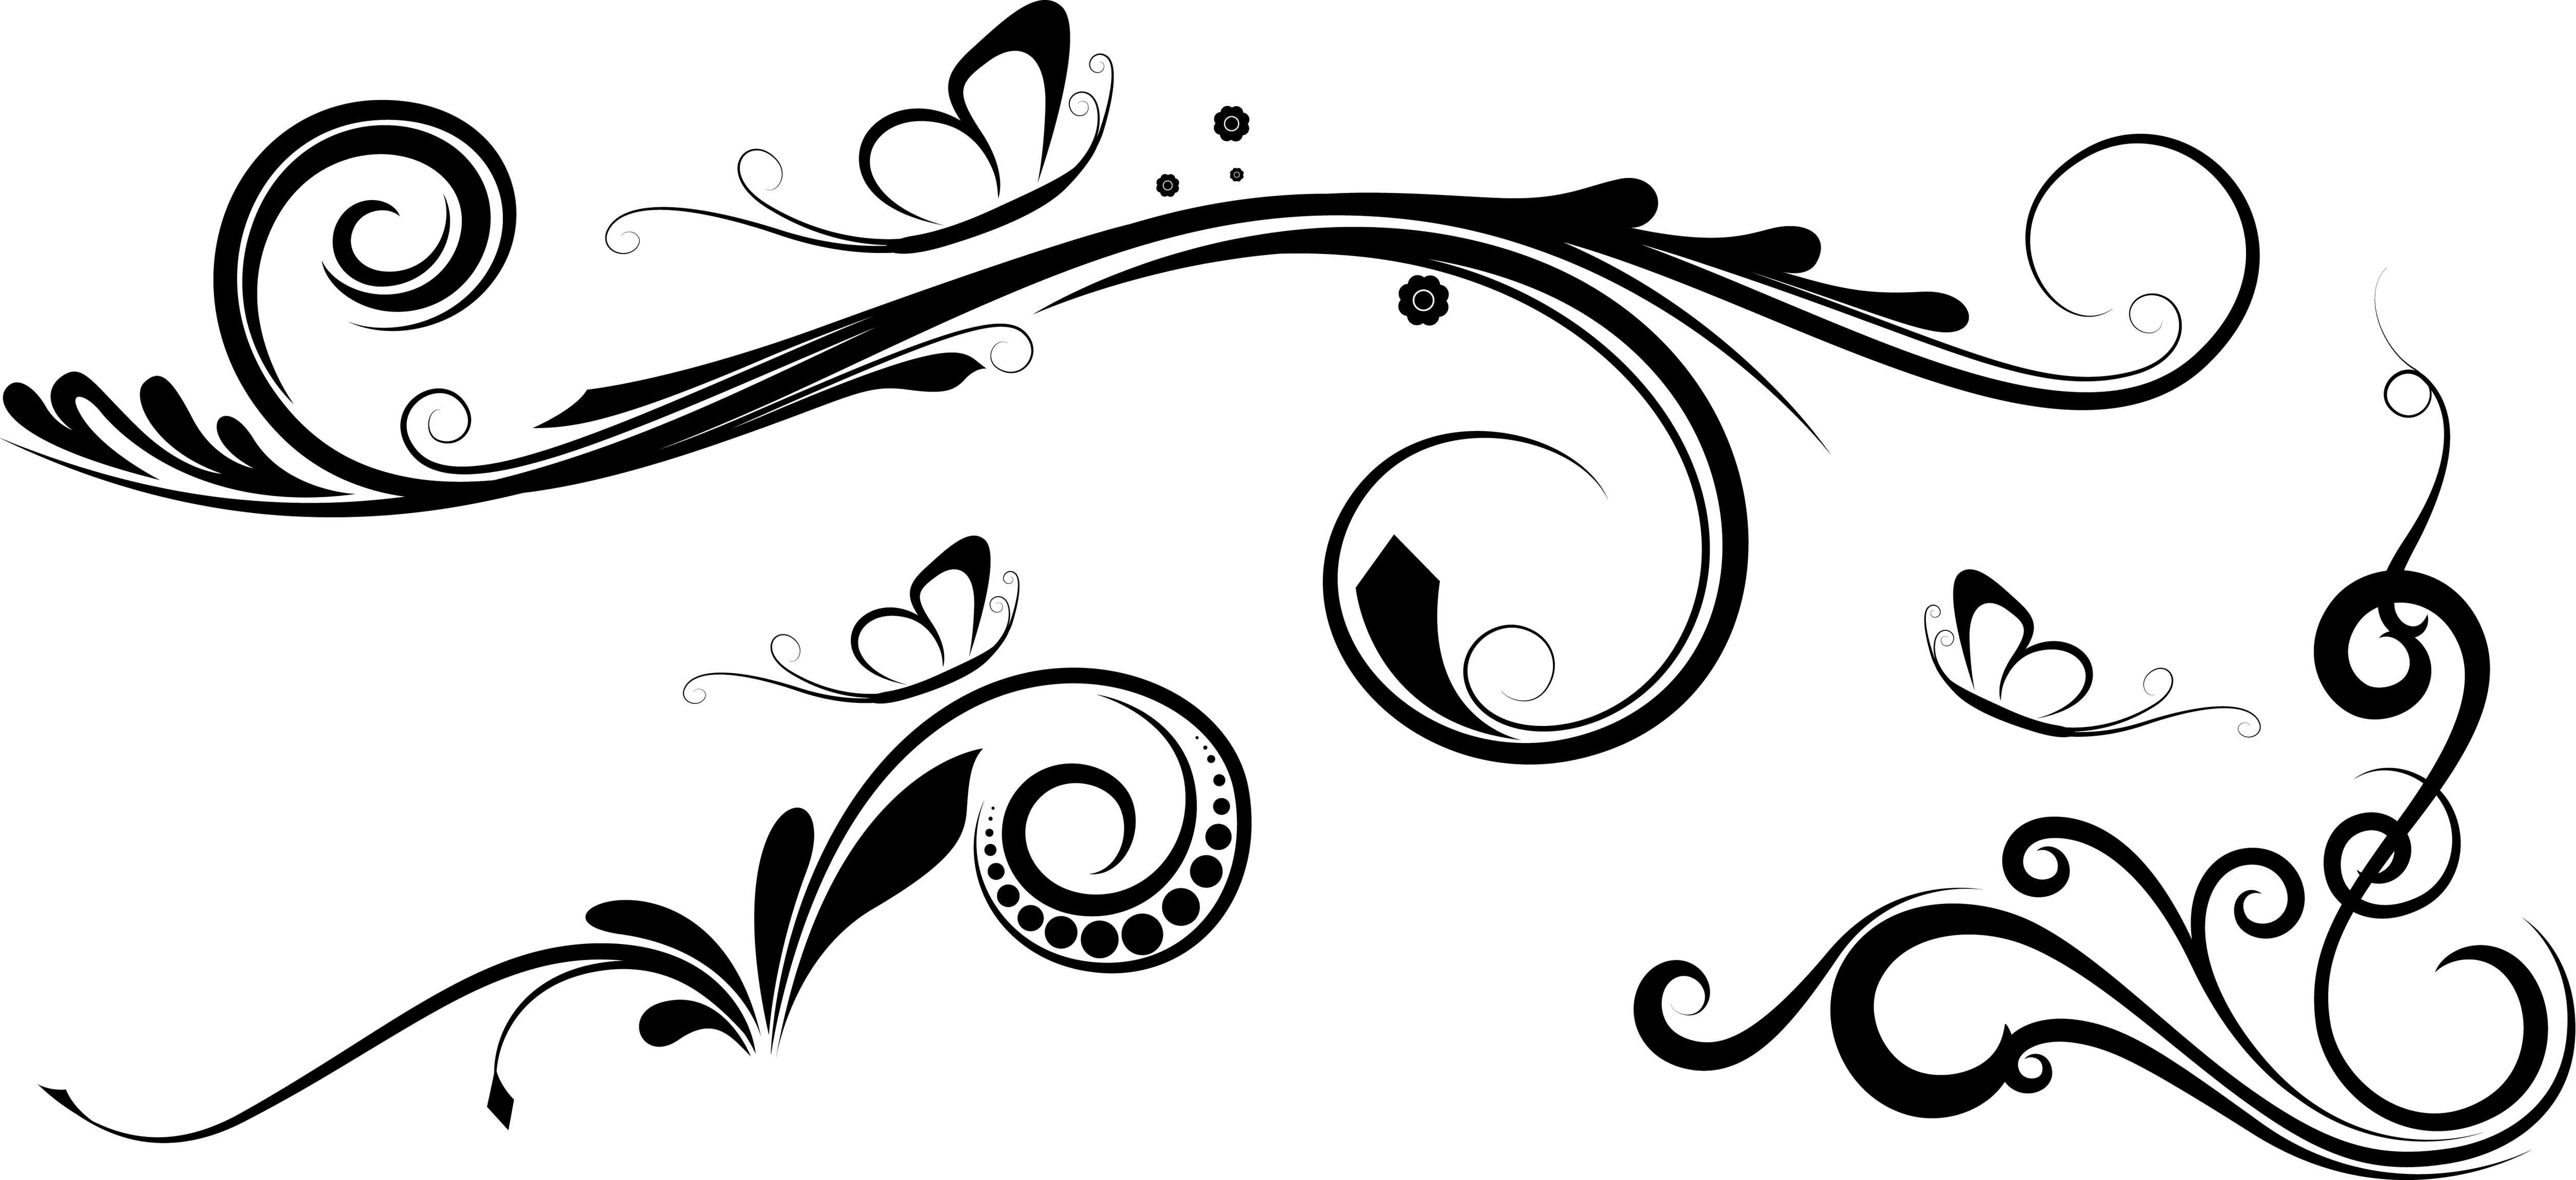 5020x2300 Vector Flowers Brushes Png